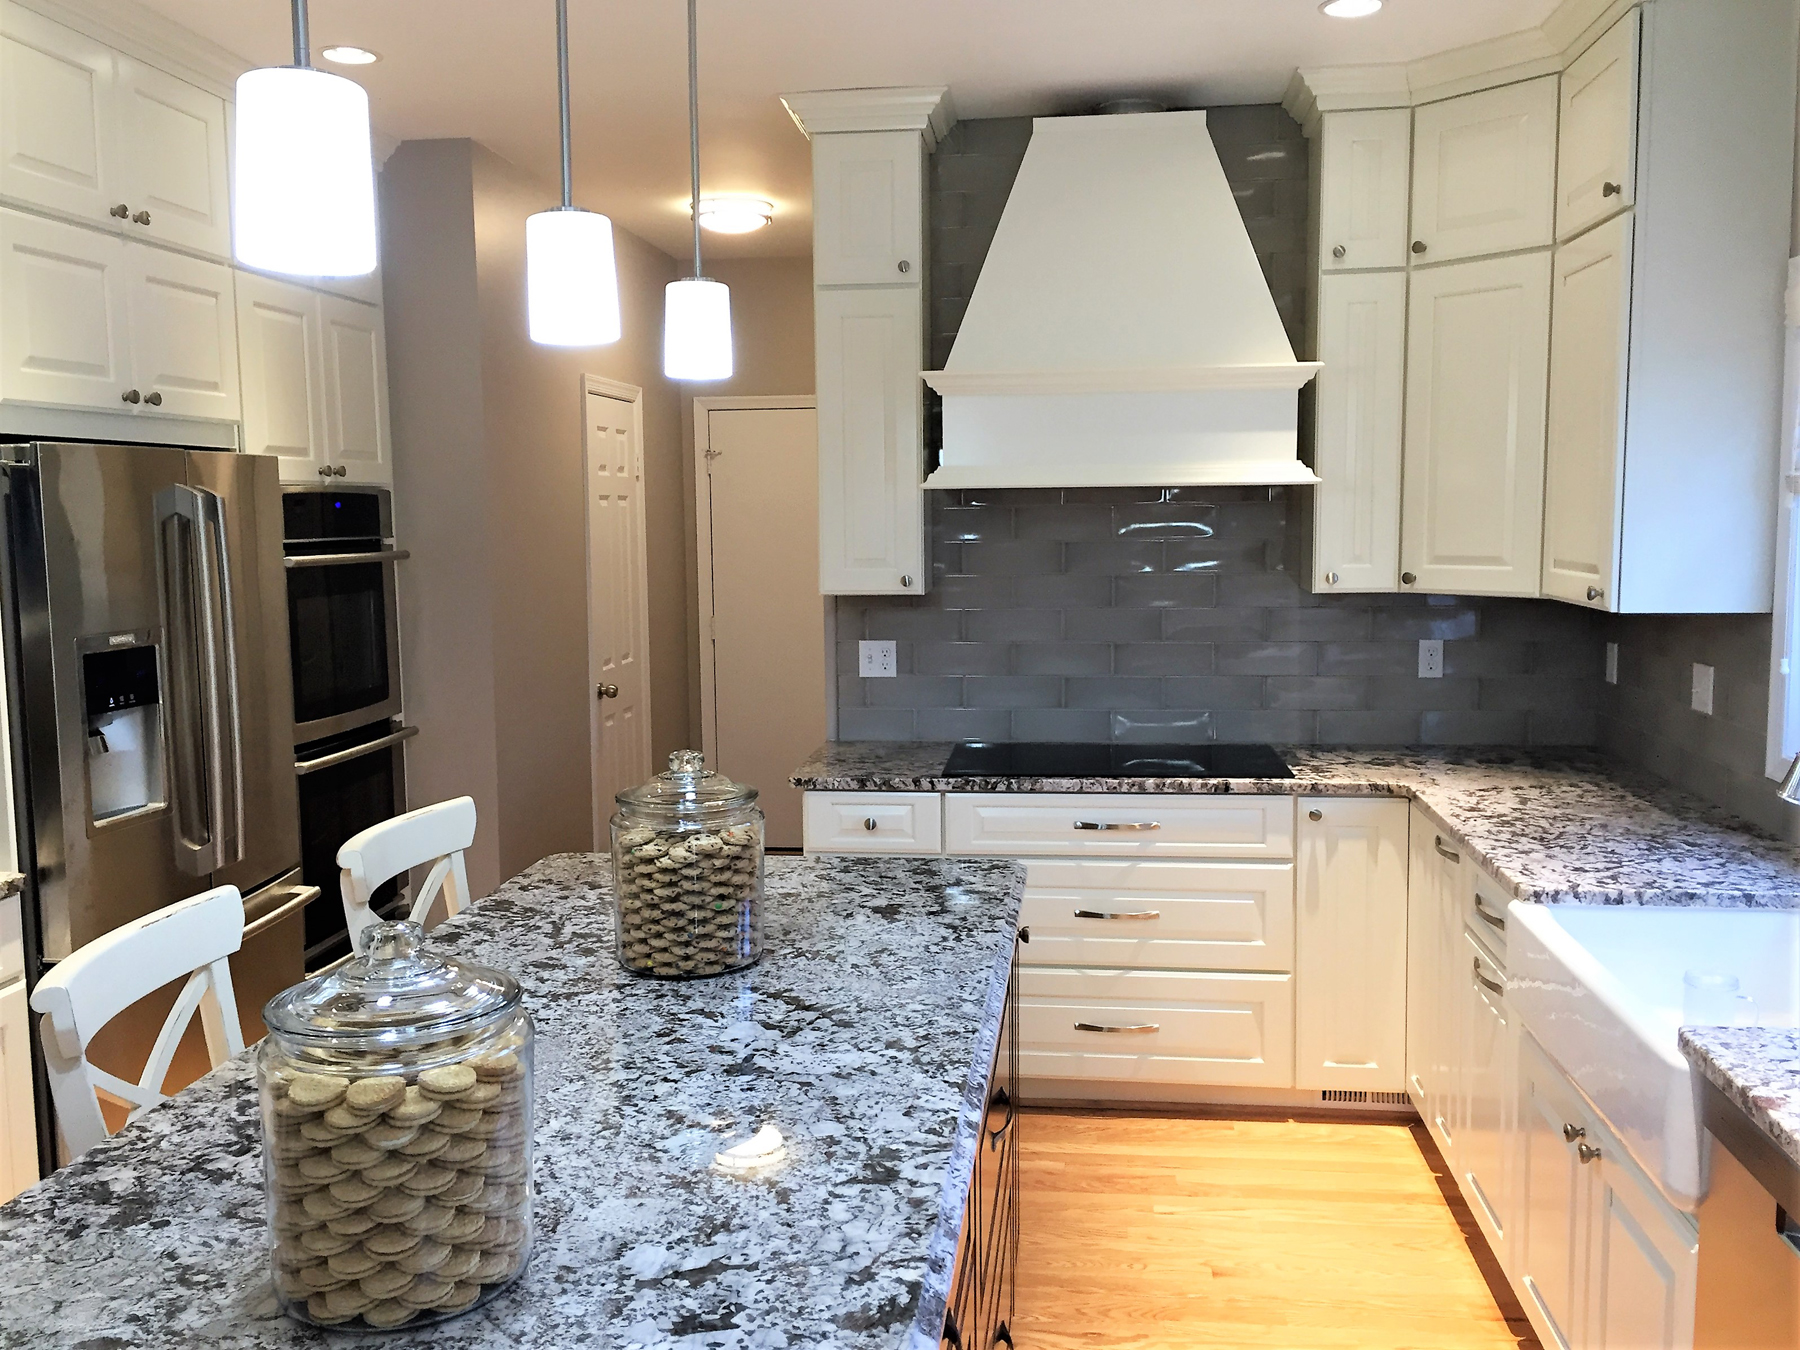 Full Kitchen Remodel With Grey Back Splash in Montgomery County, MD